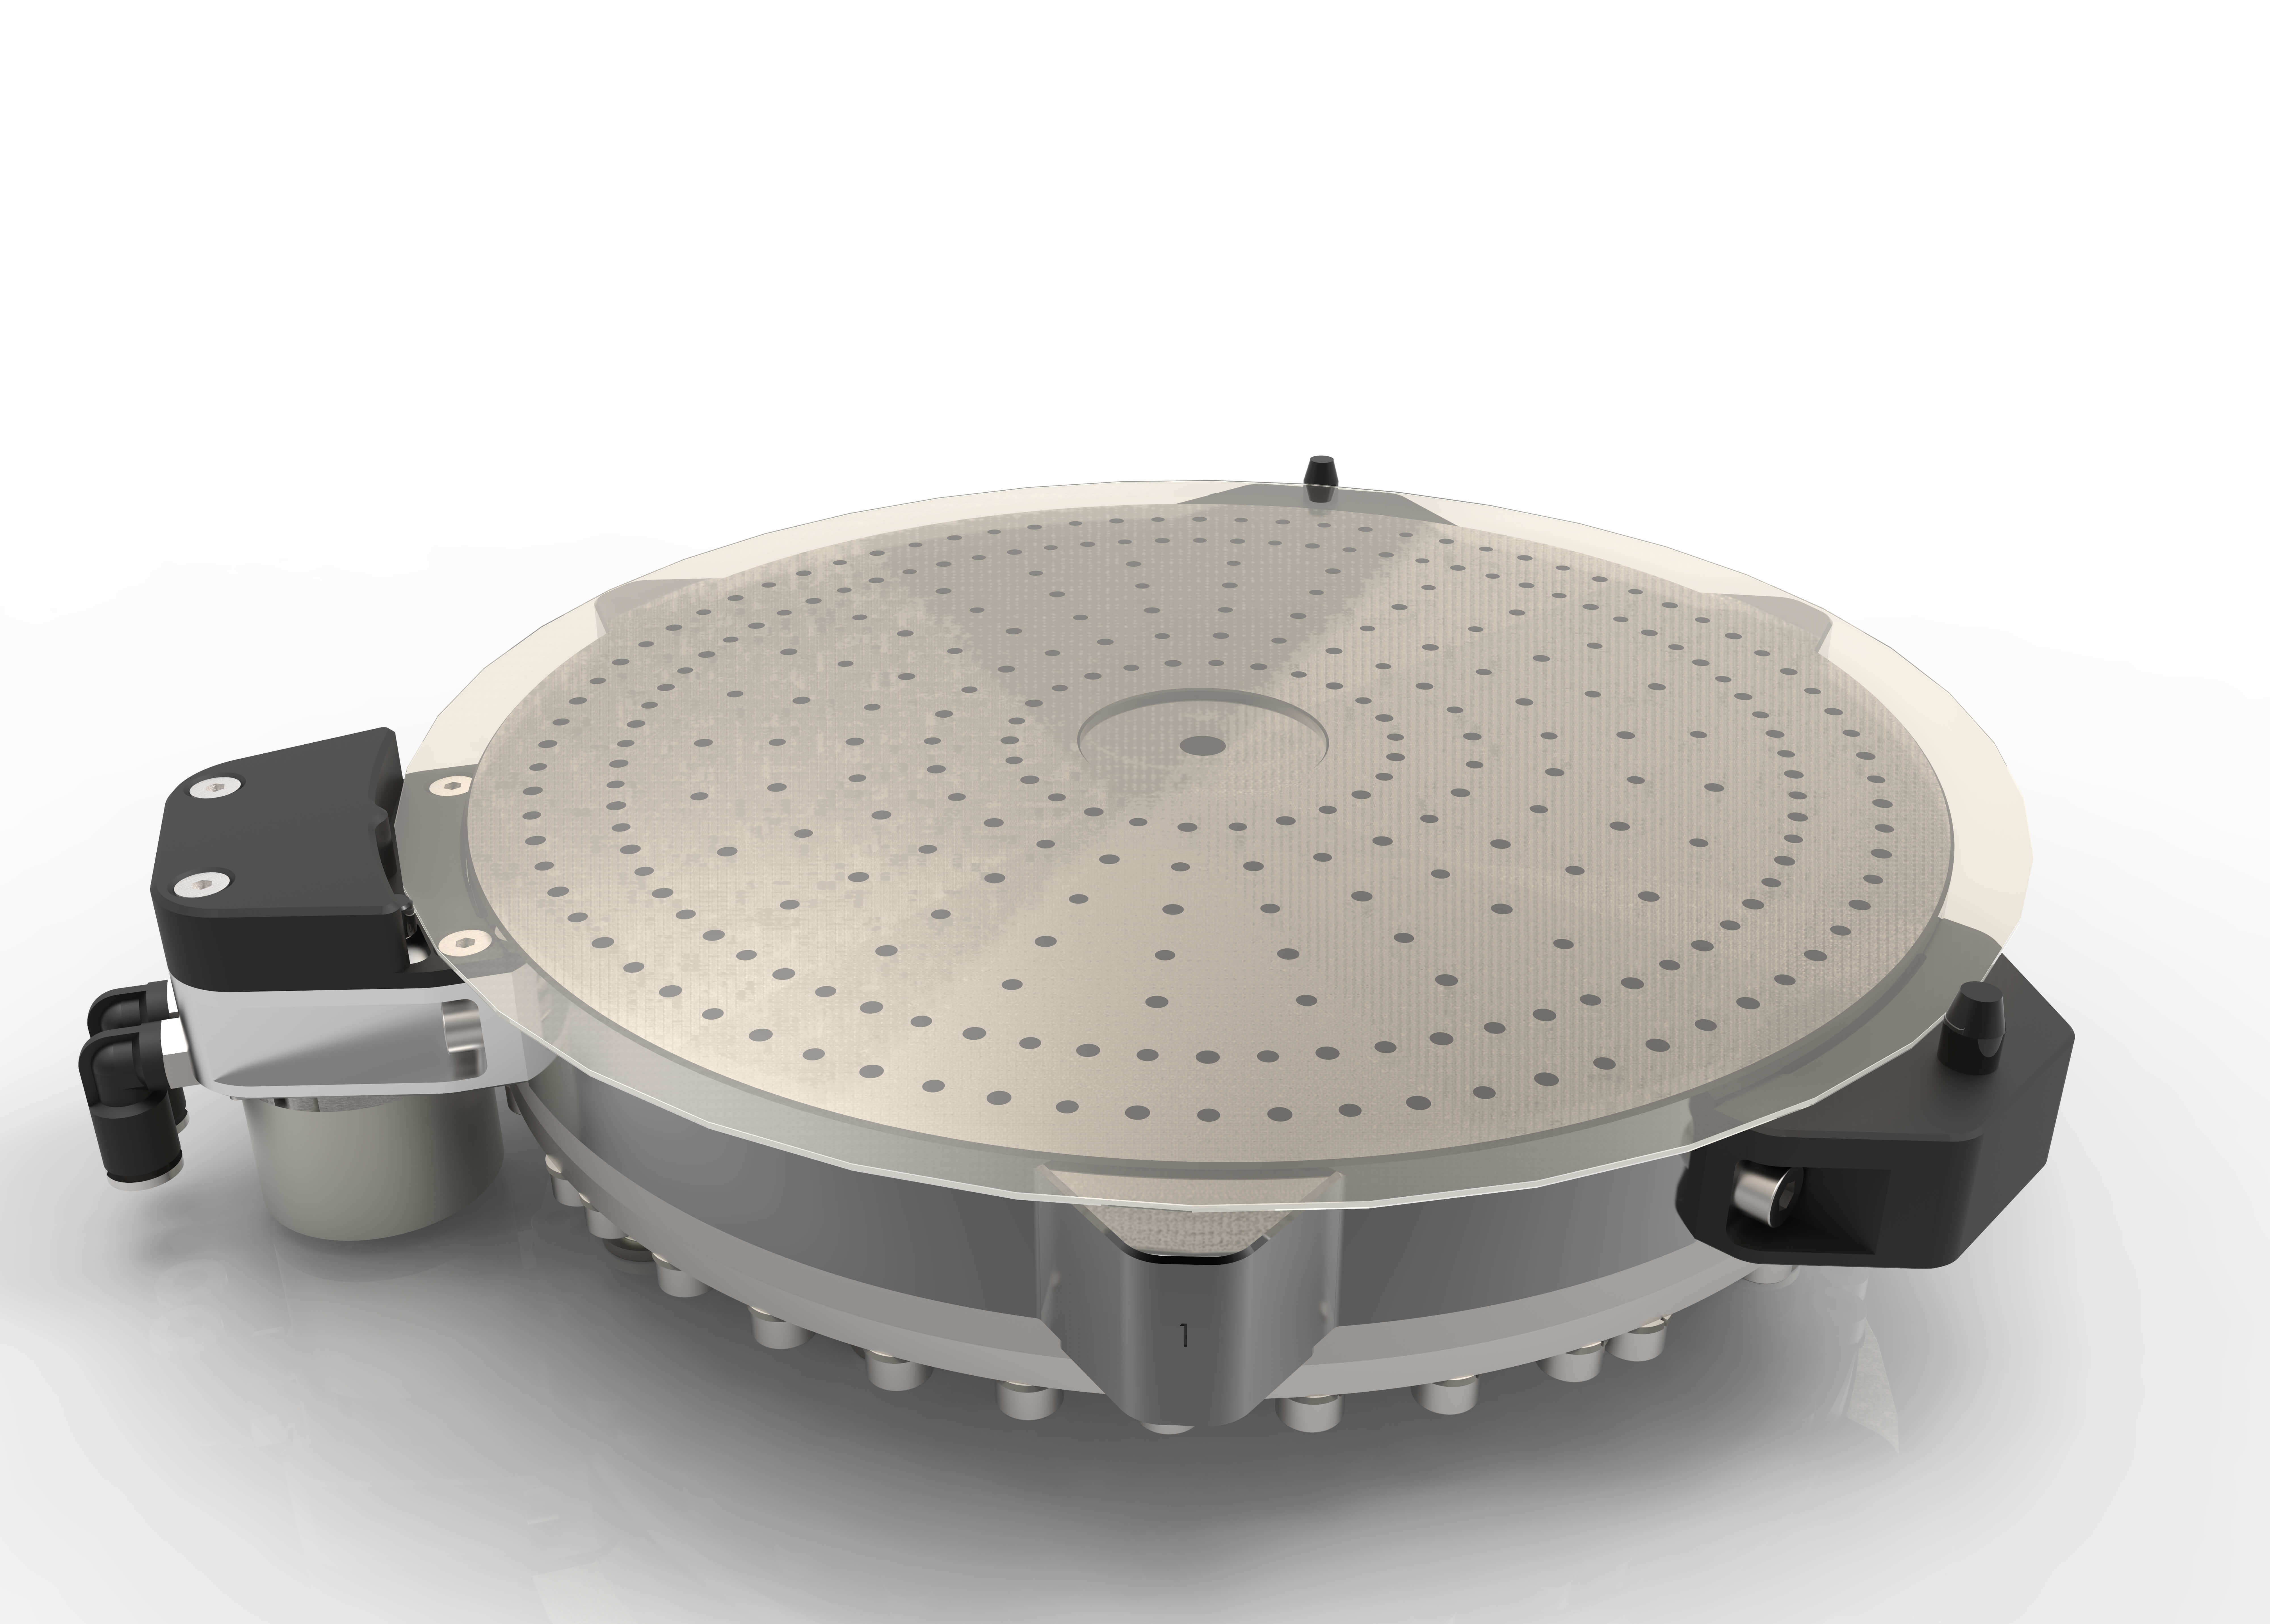 CoreFlow's non-contact chuck reduces backside particle contamination in semiconductor wafers